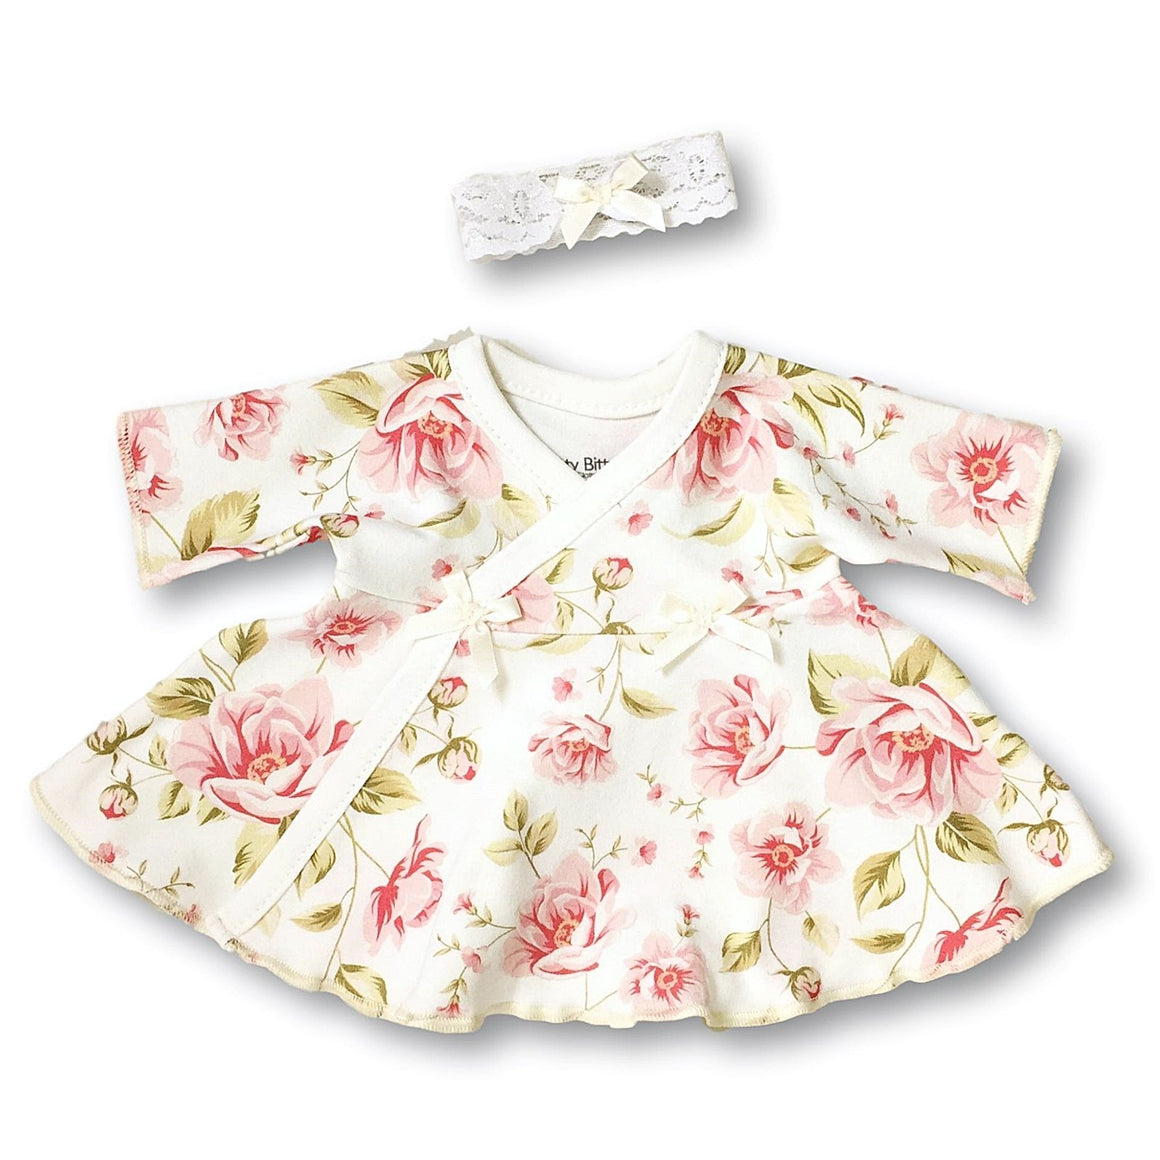 Preemie Dress + Headband // Vintage Roses-NICU Dresses-UniqueKidz